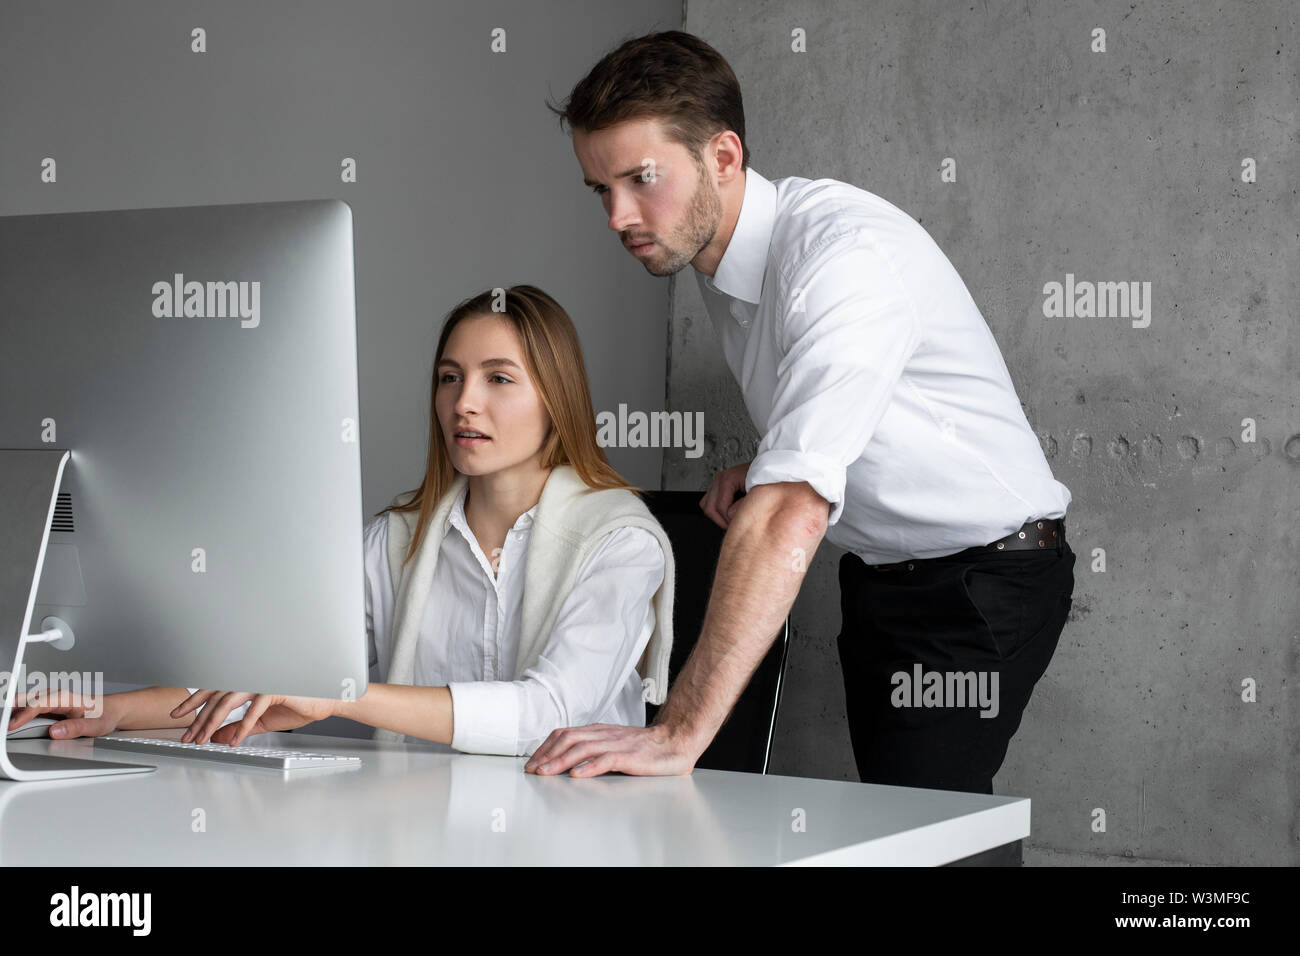 Businesspeople using computer together - Stock Image